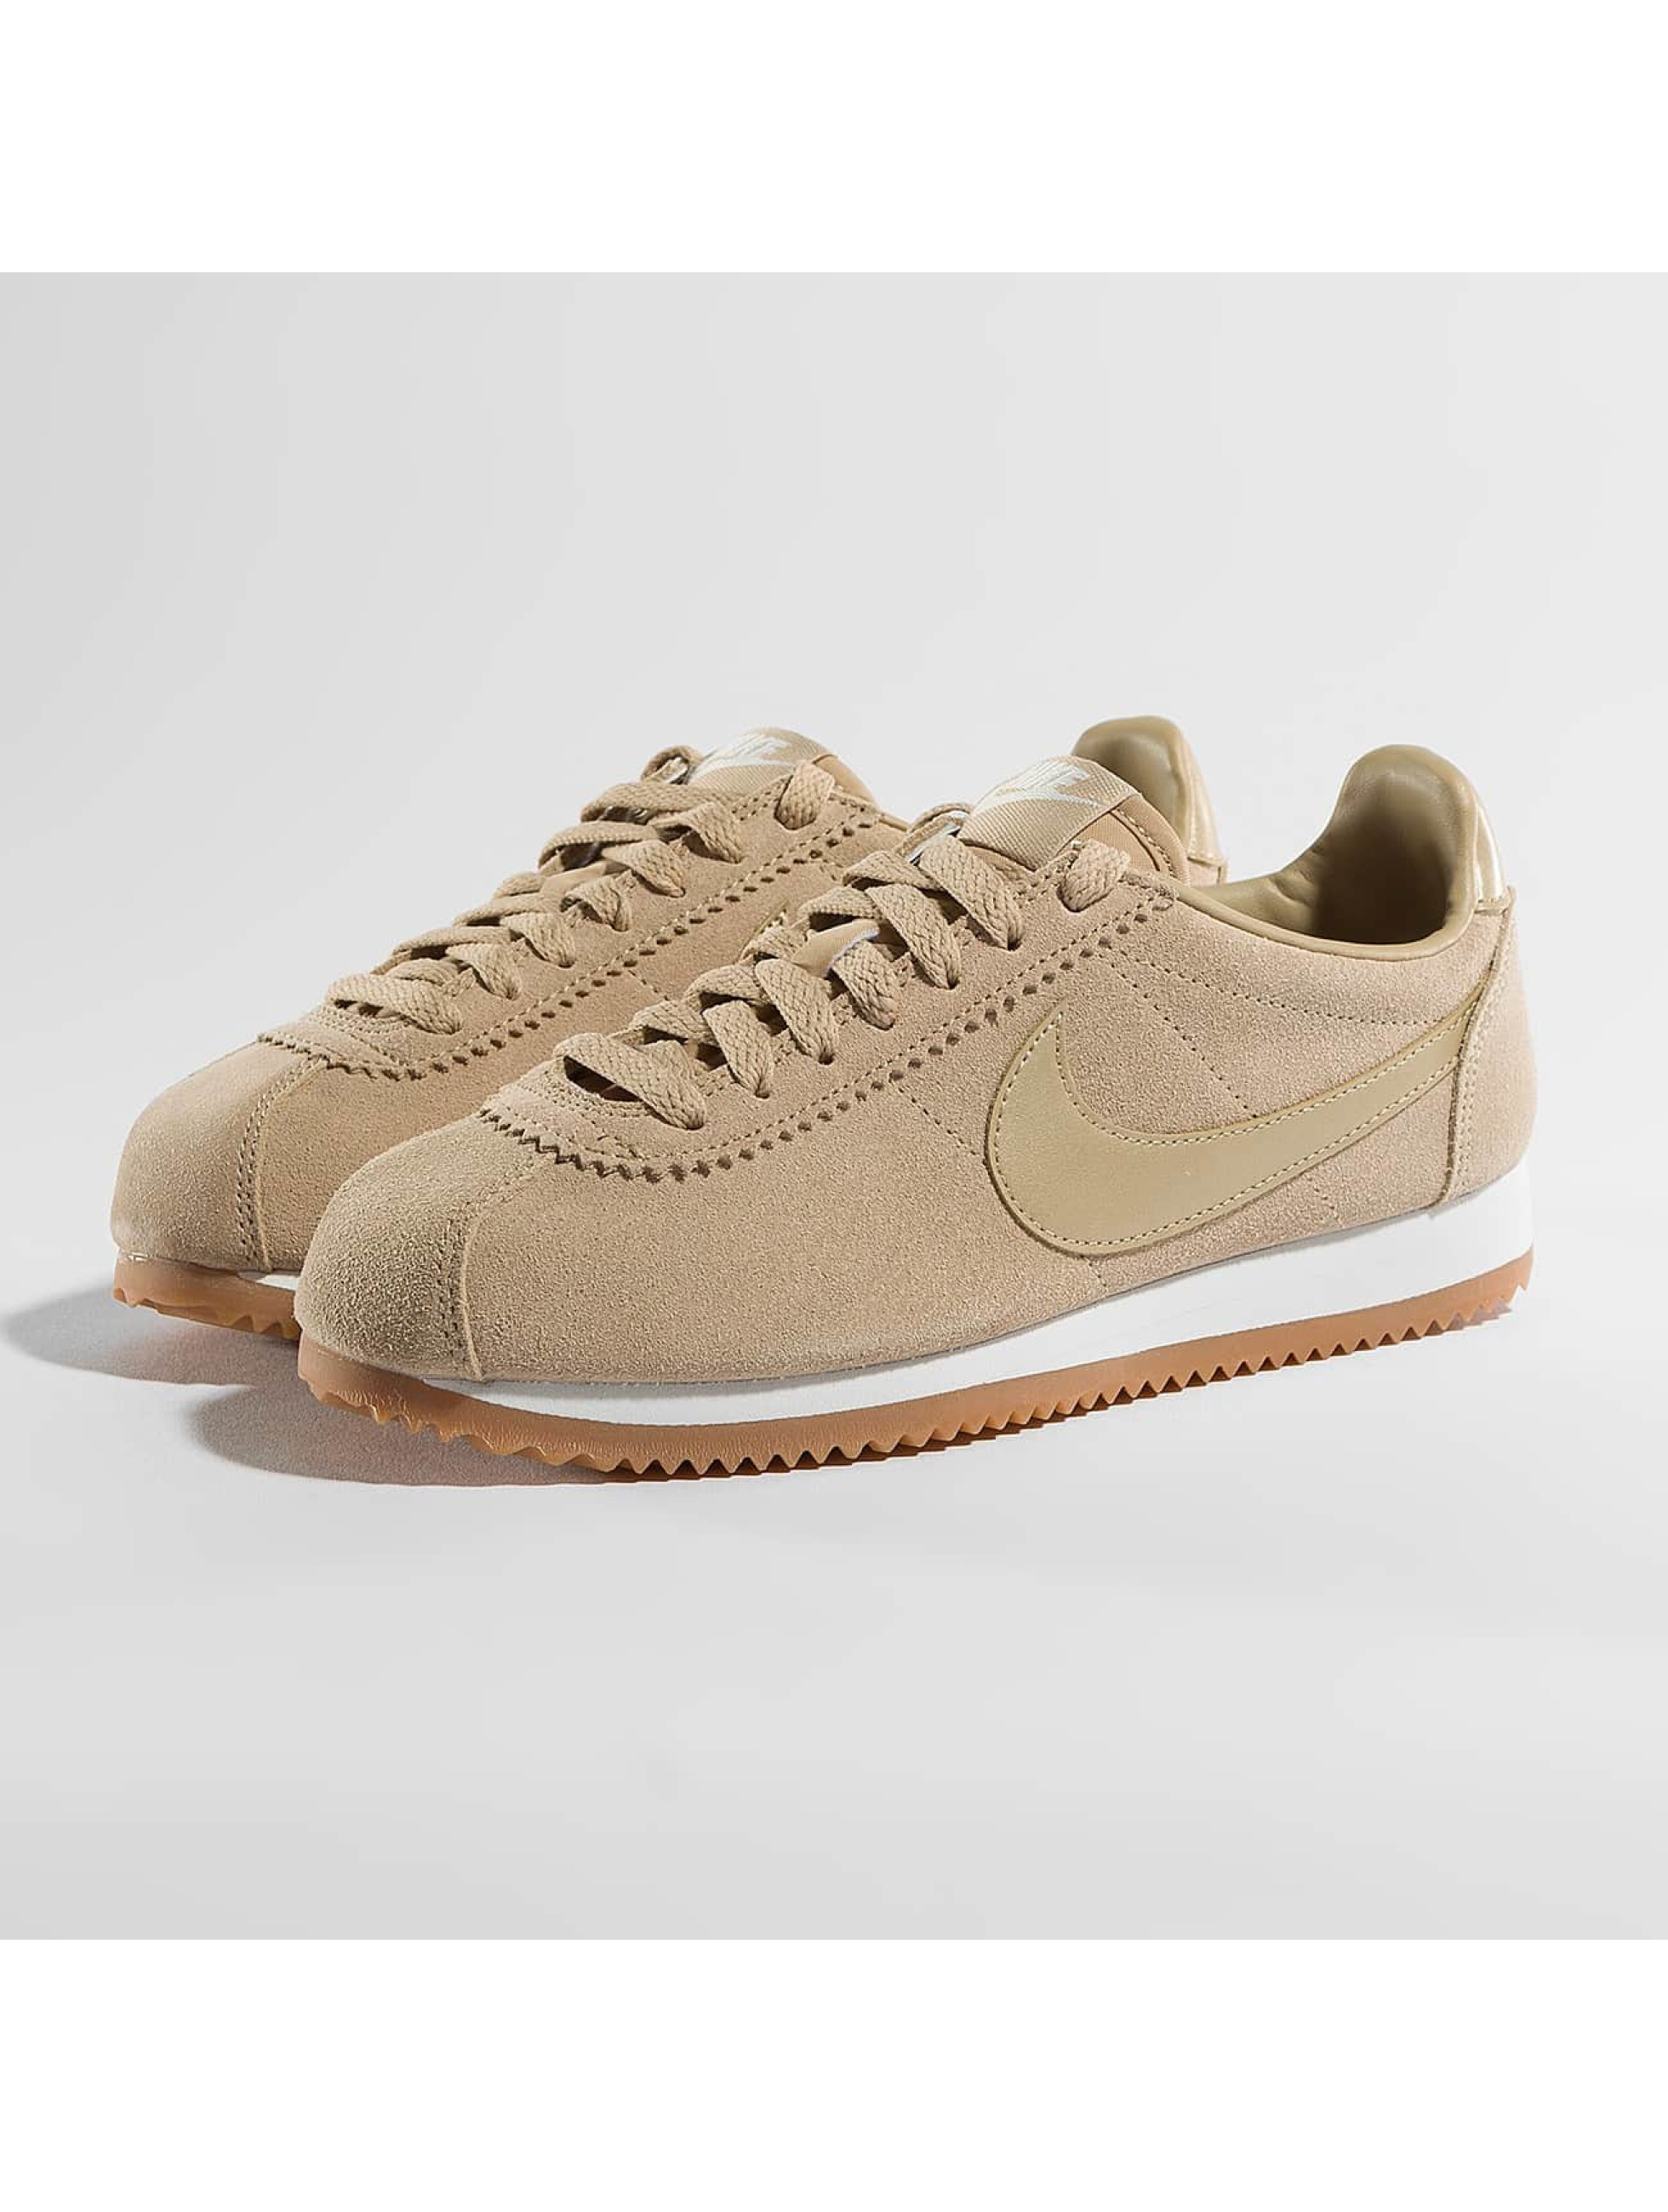 nike damen sneaker classic cortez suede in beige 394912. Black Bedroom Furniture Sets. Home Design Ideas